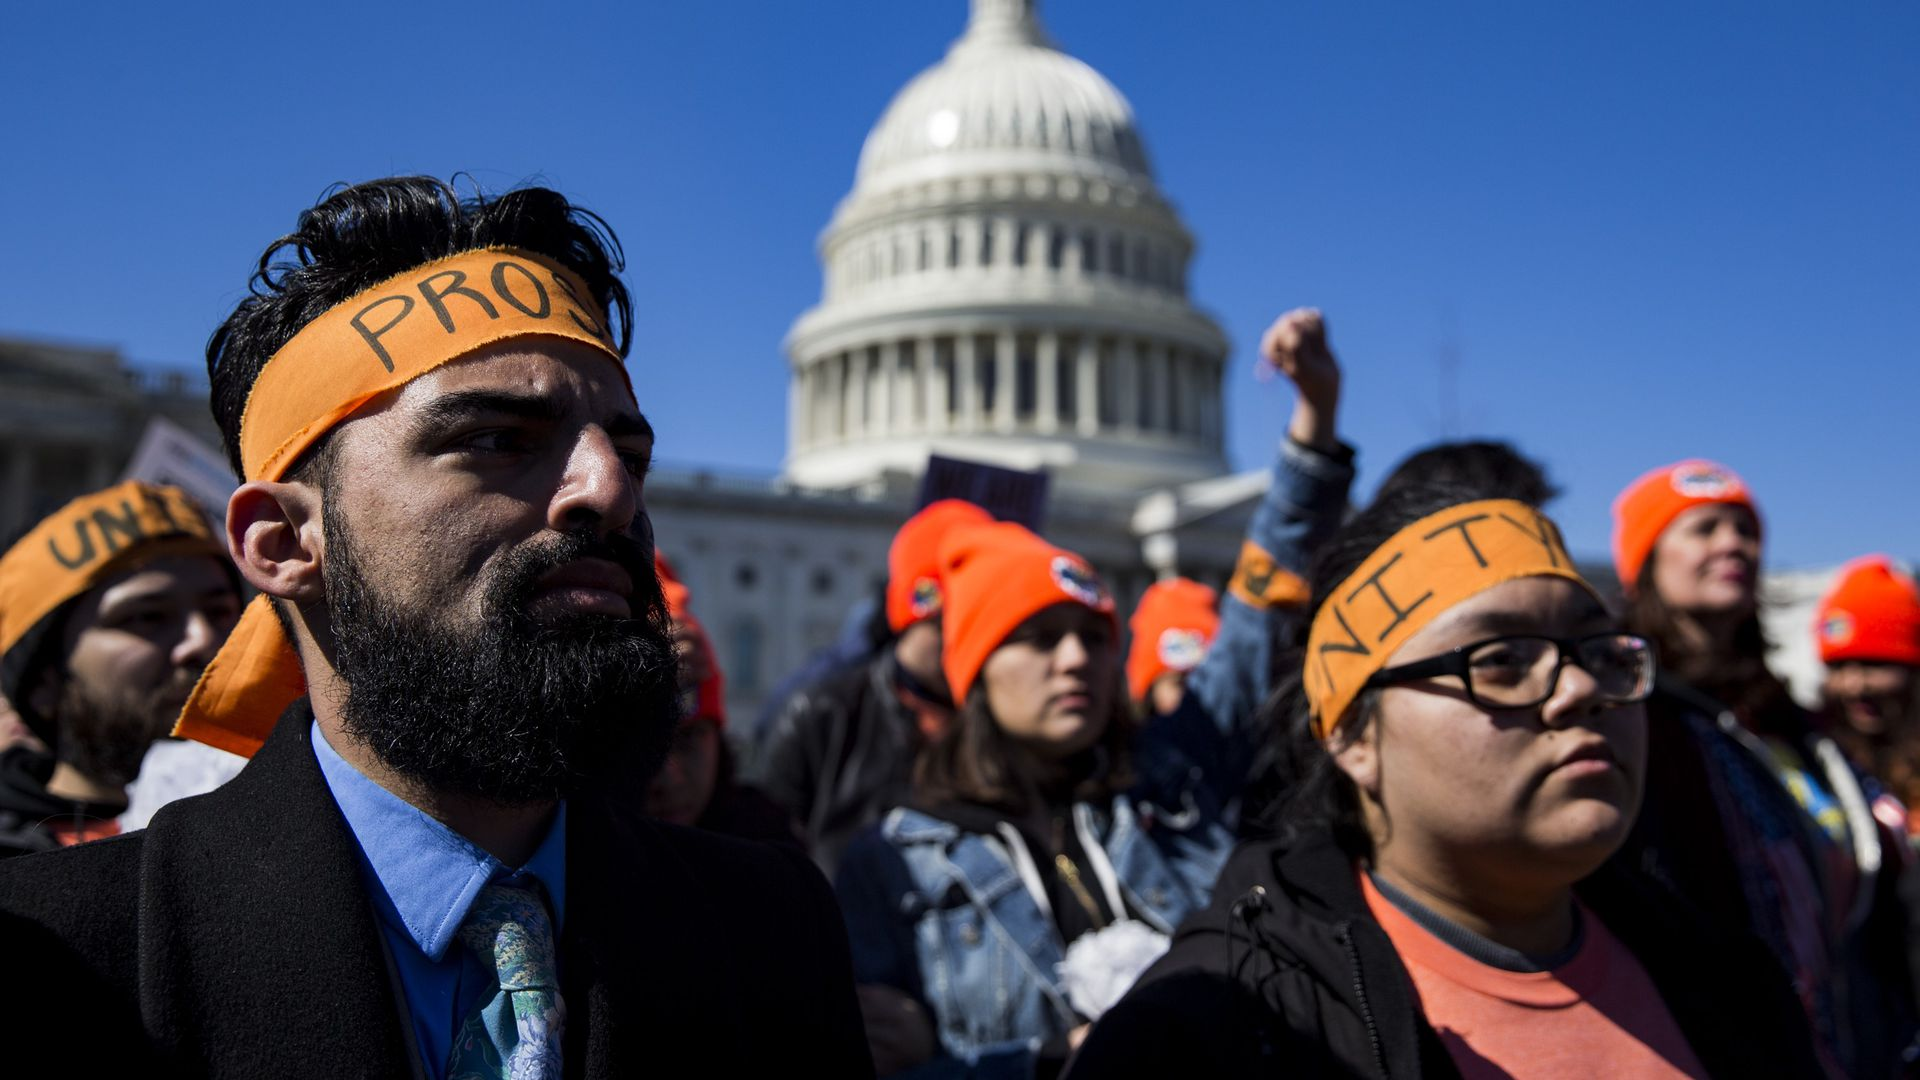 DACA protestors wearing orange headbands out front of the U.S. Capitol building